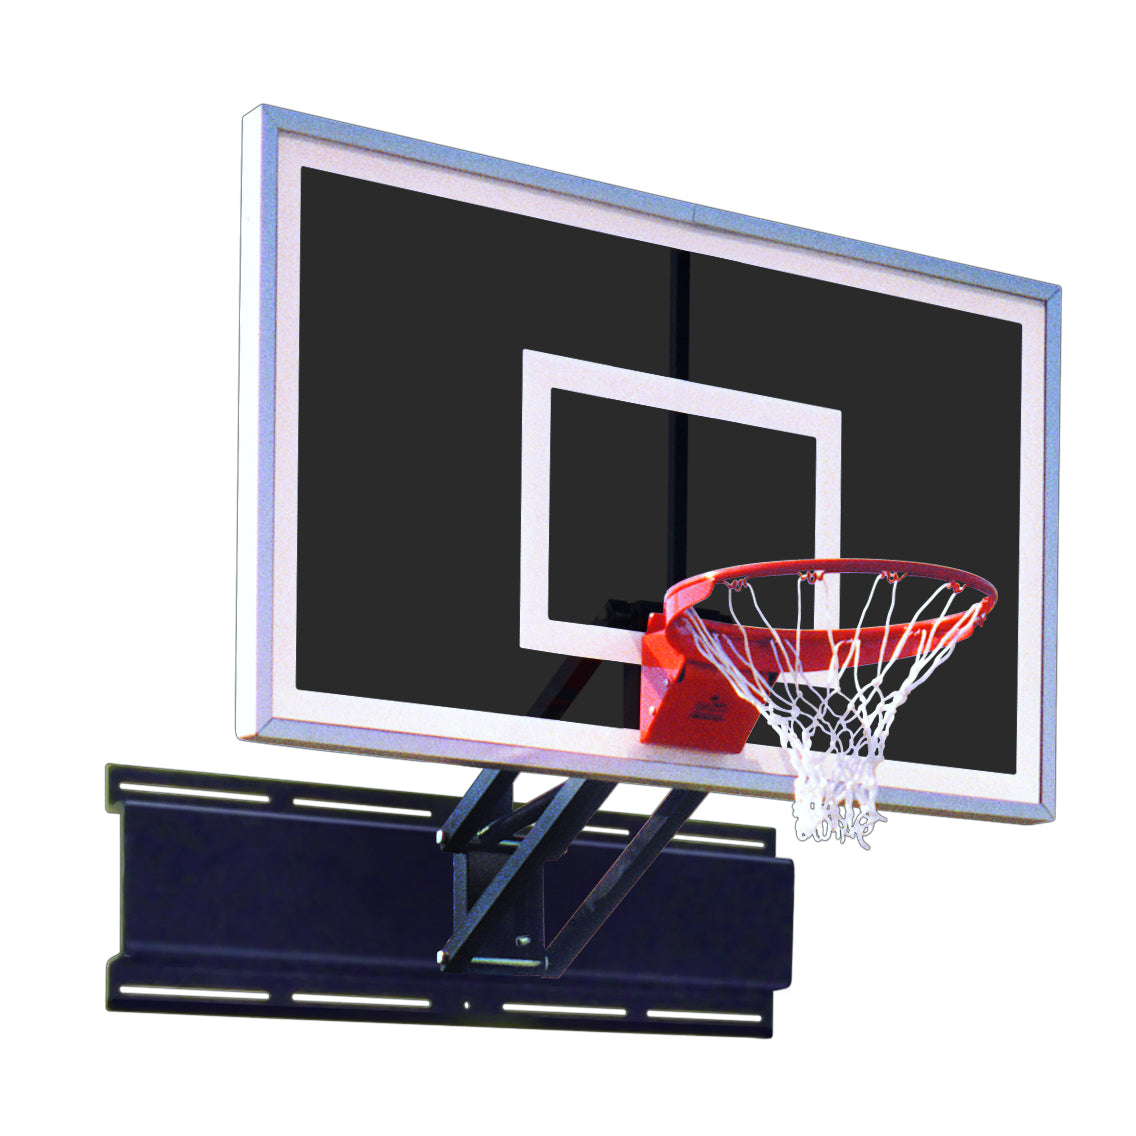 "Team Uni-Champ Eclipse Wall Mount Adjustable Basketball Hoop 36""x 60"""